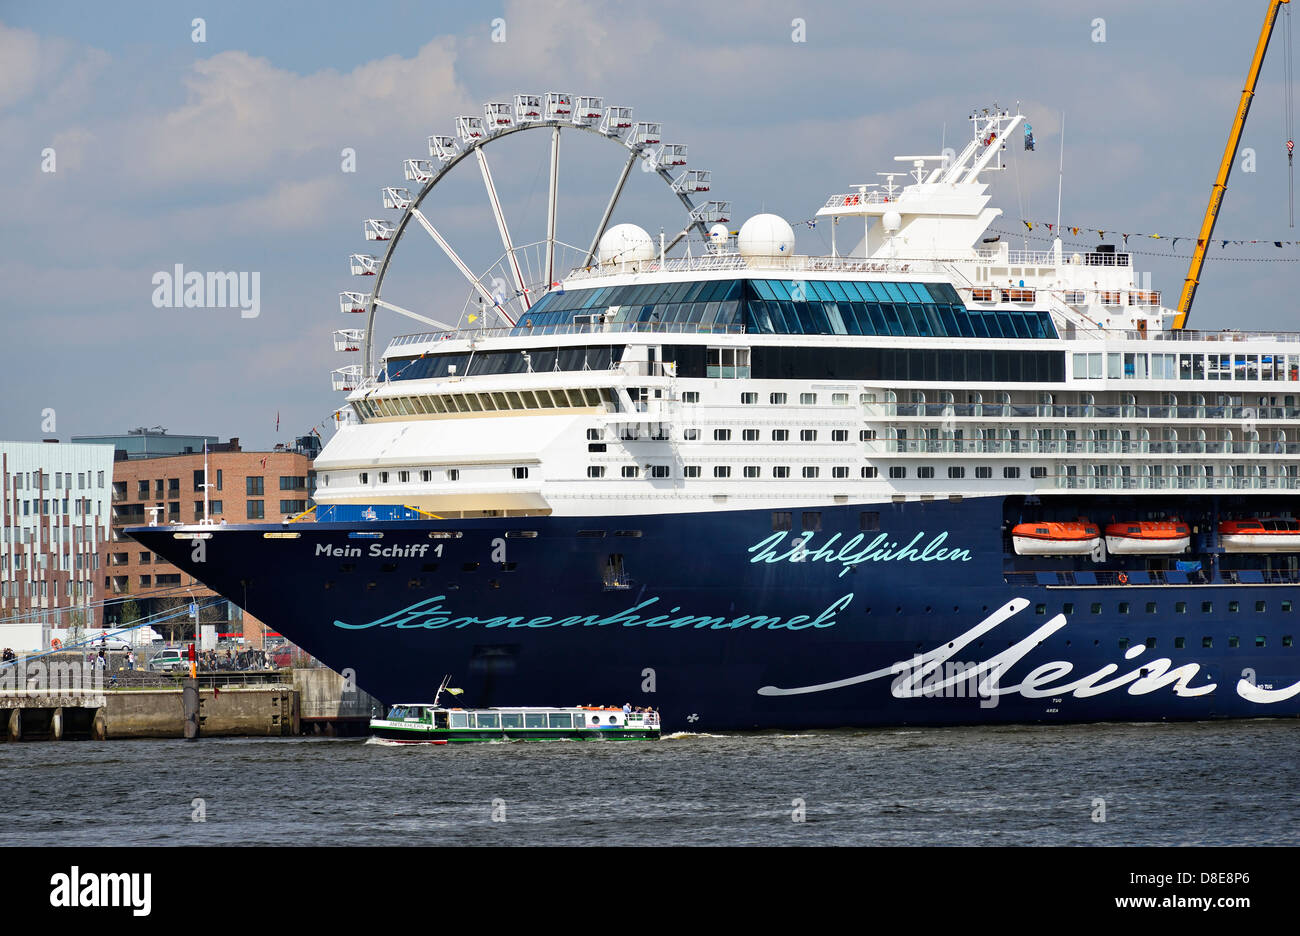 Cruise Ship Mein Schiff 1 at the cruise terminal in Hamburg, Germany, Europe - Stock Image